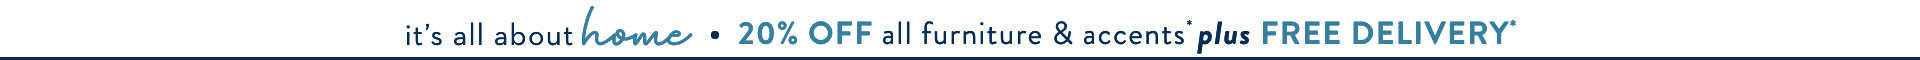 It's All About Home at Star Furniture! Get 20% off all furniture and accents plus free delivery. Special financing options available in-store!